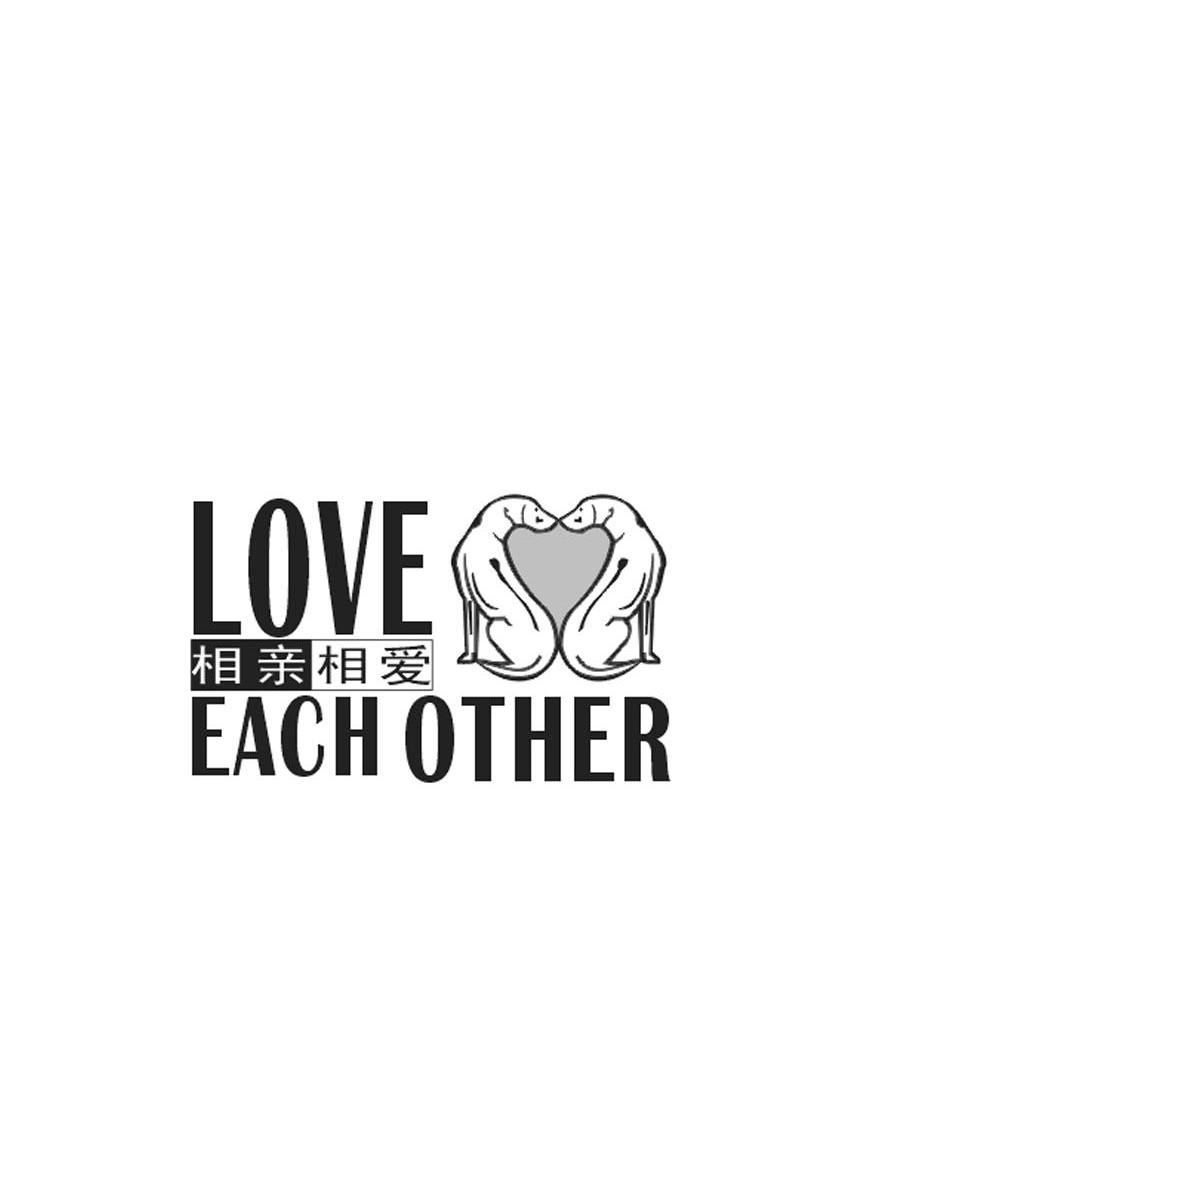 相亲相爱 LOVE EACH OTHER